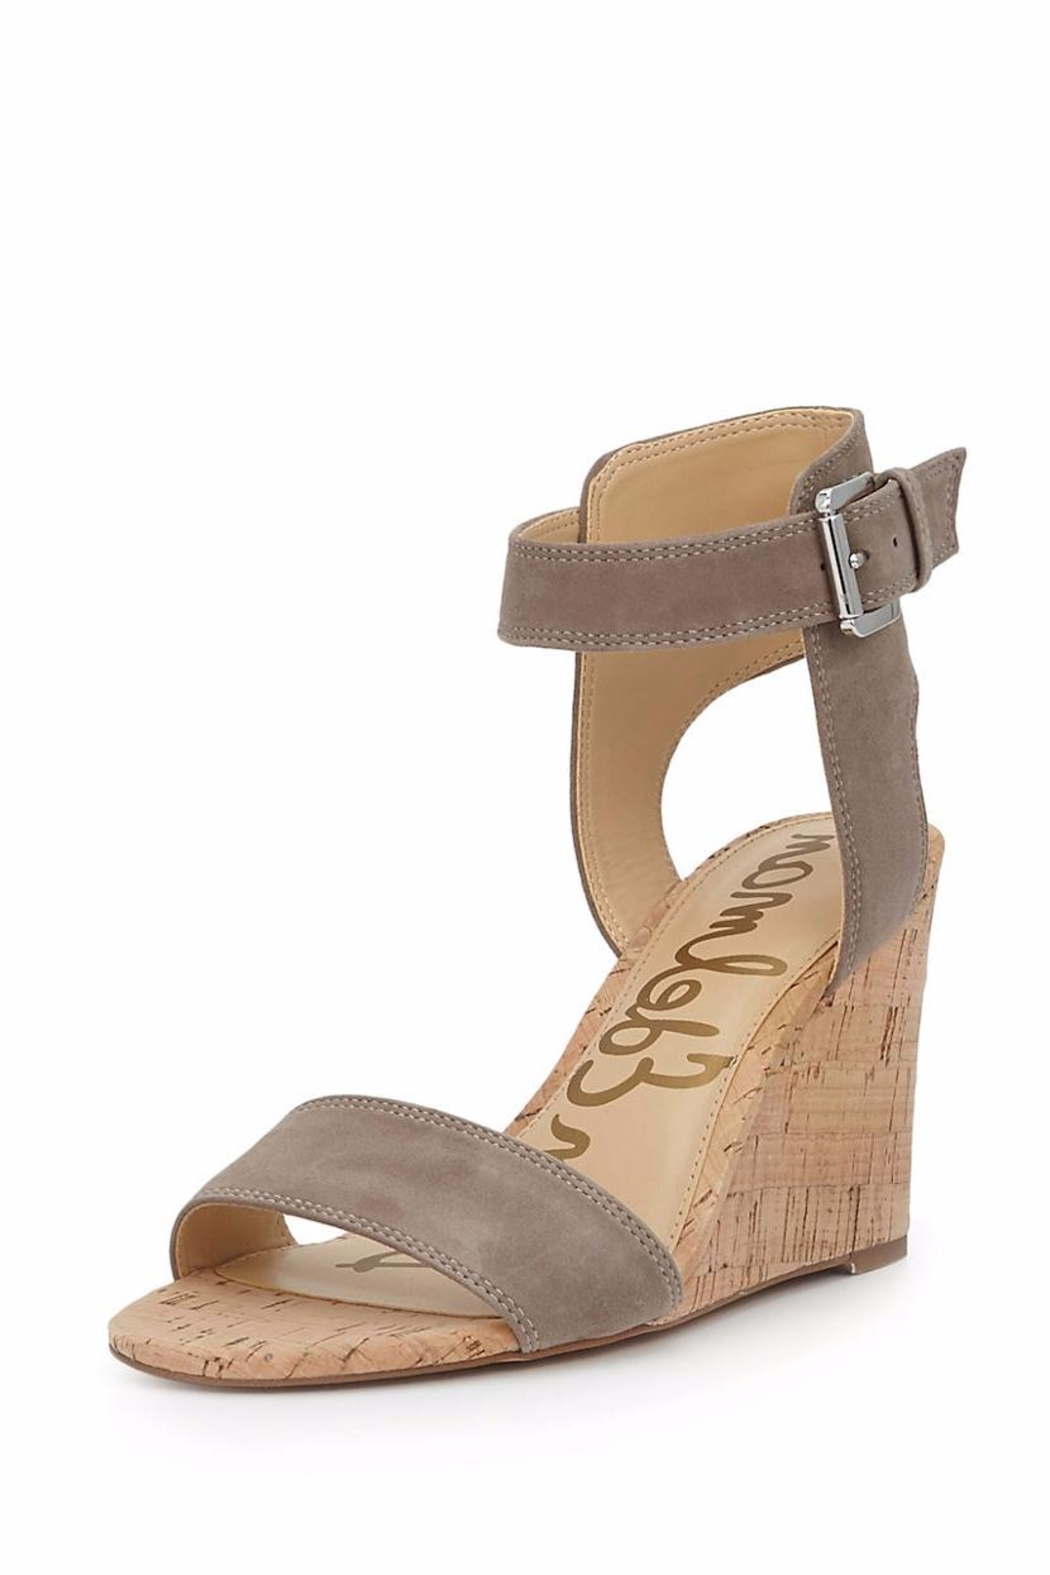 Sam Edelman Willow Wedge From Hudson Valley By Bfree